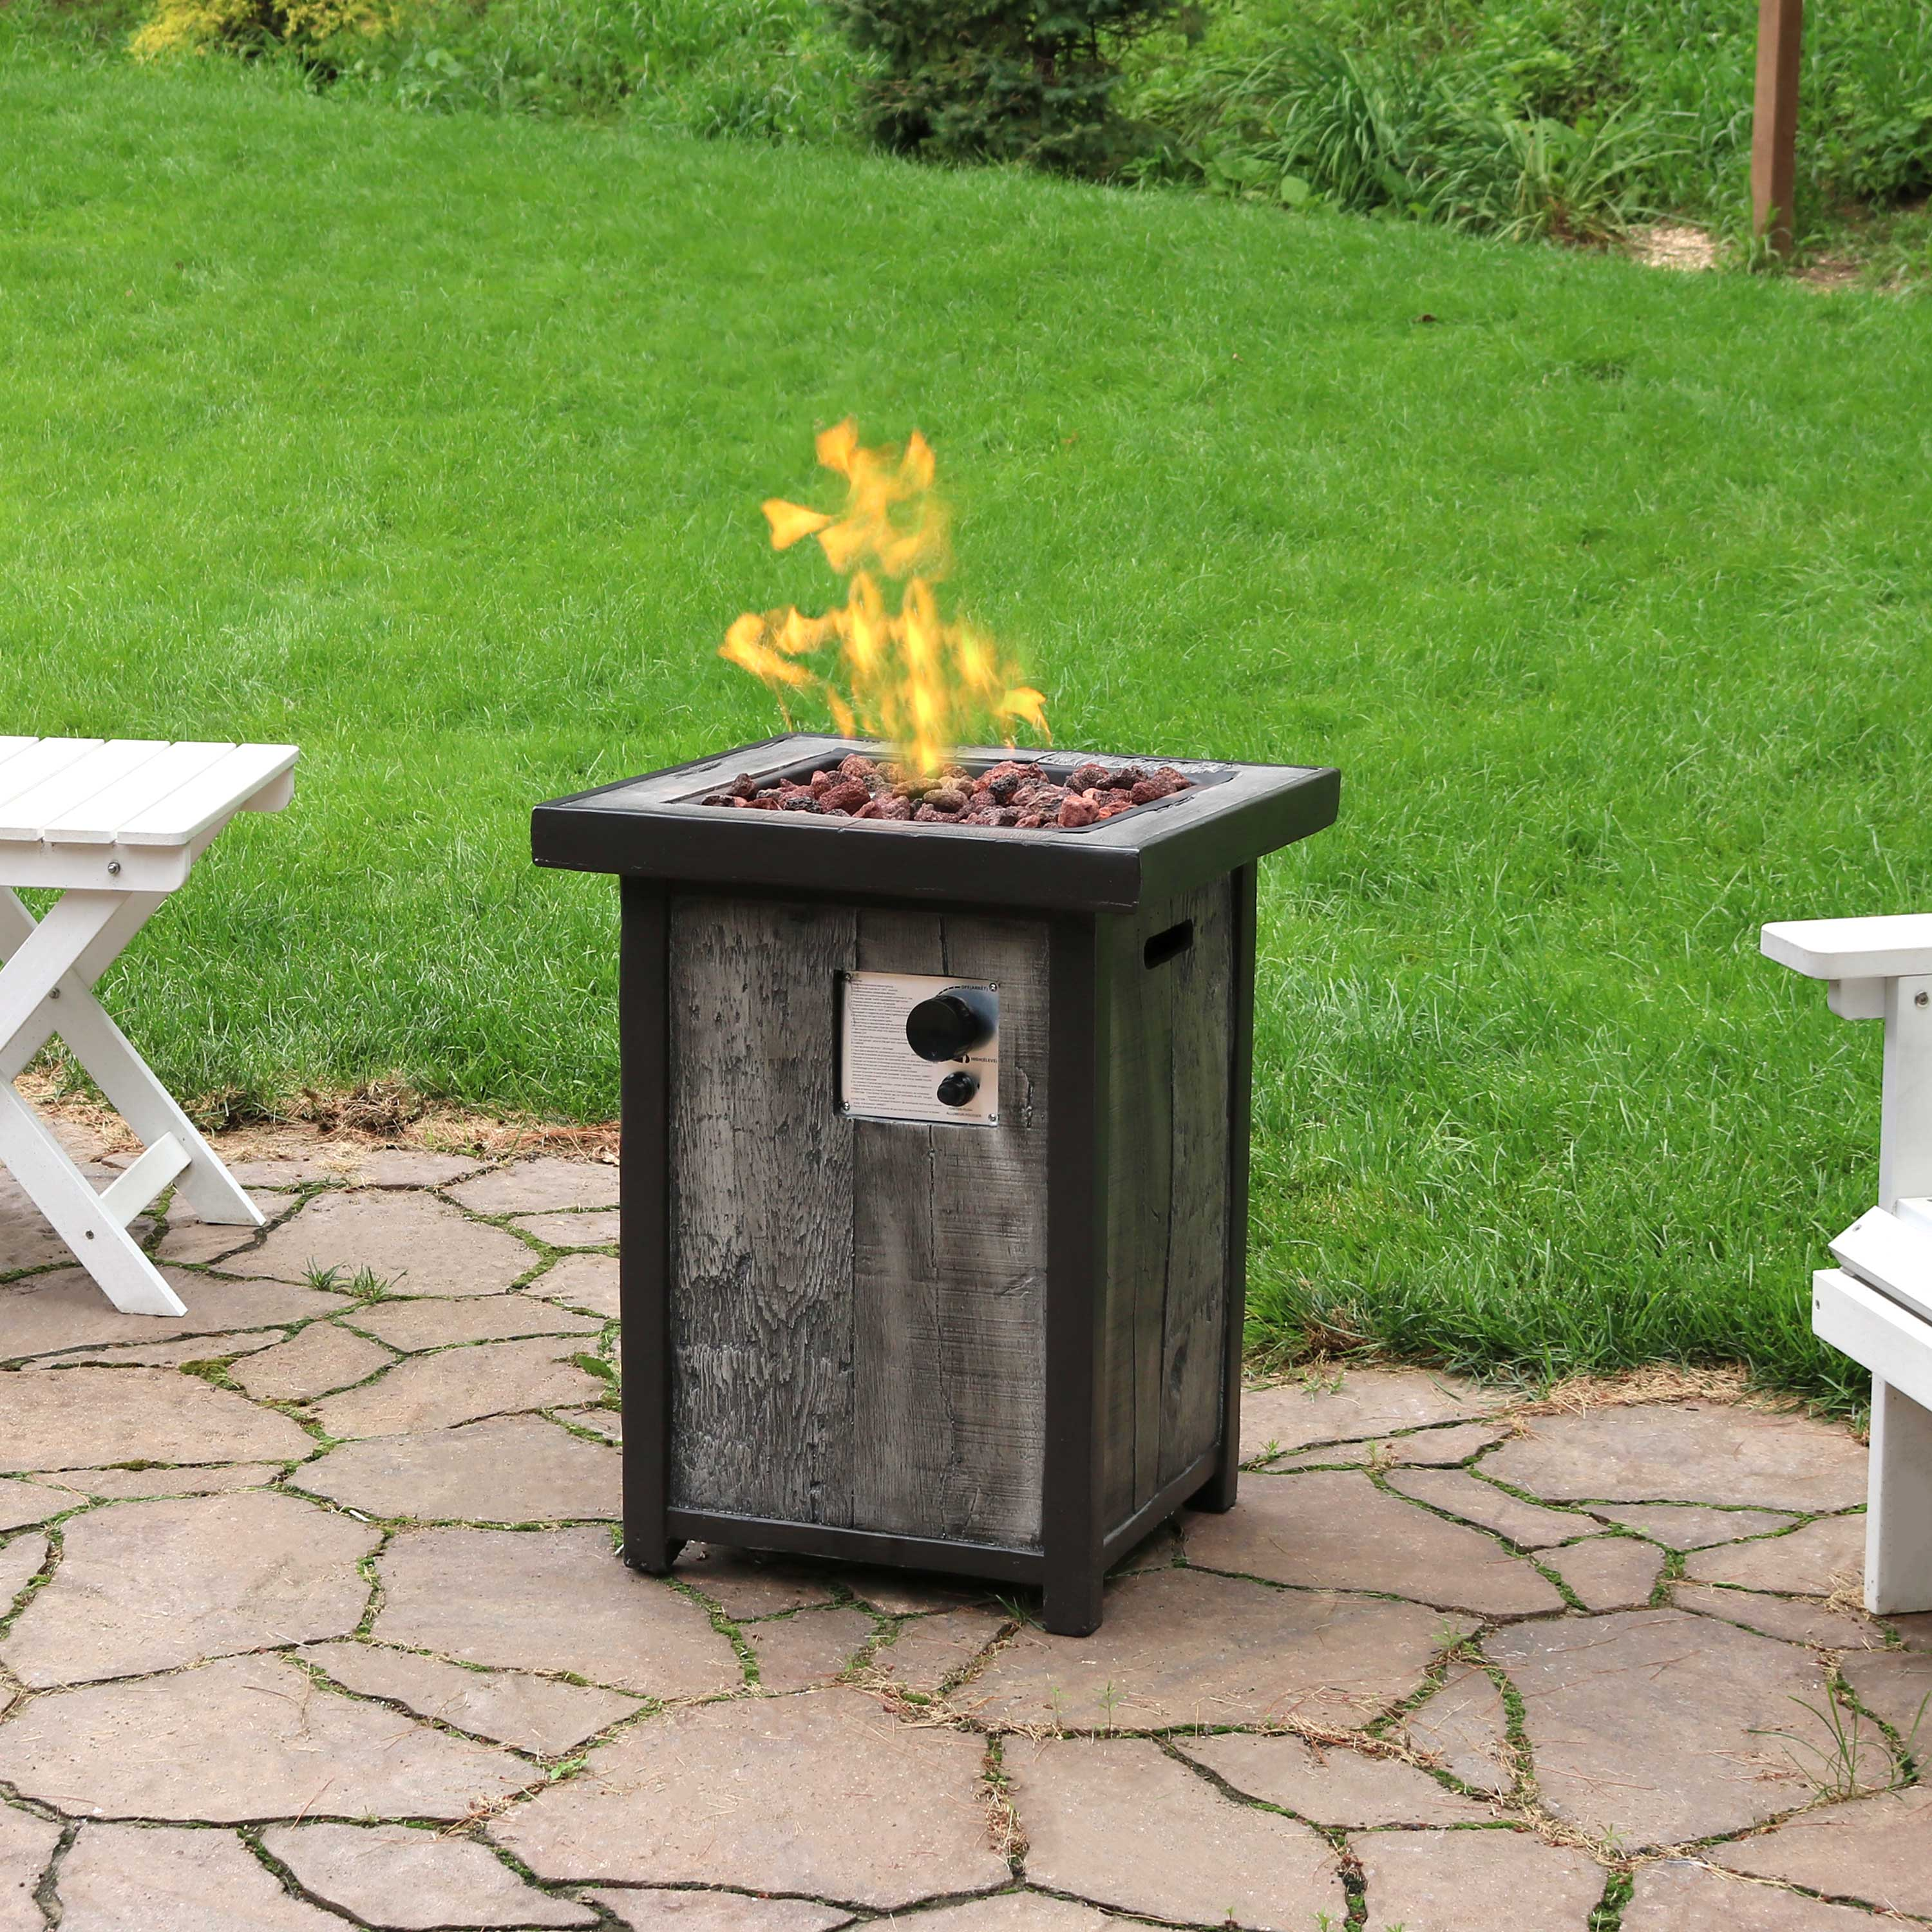 Sunnydaze Square Propane Gas Fire Pit Table with Weathered Wood Look - 24-Inch